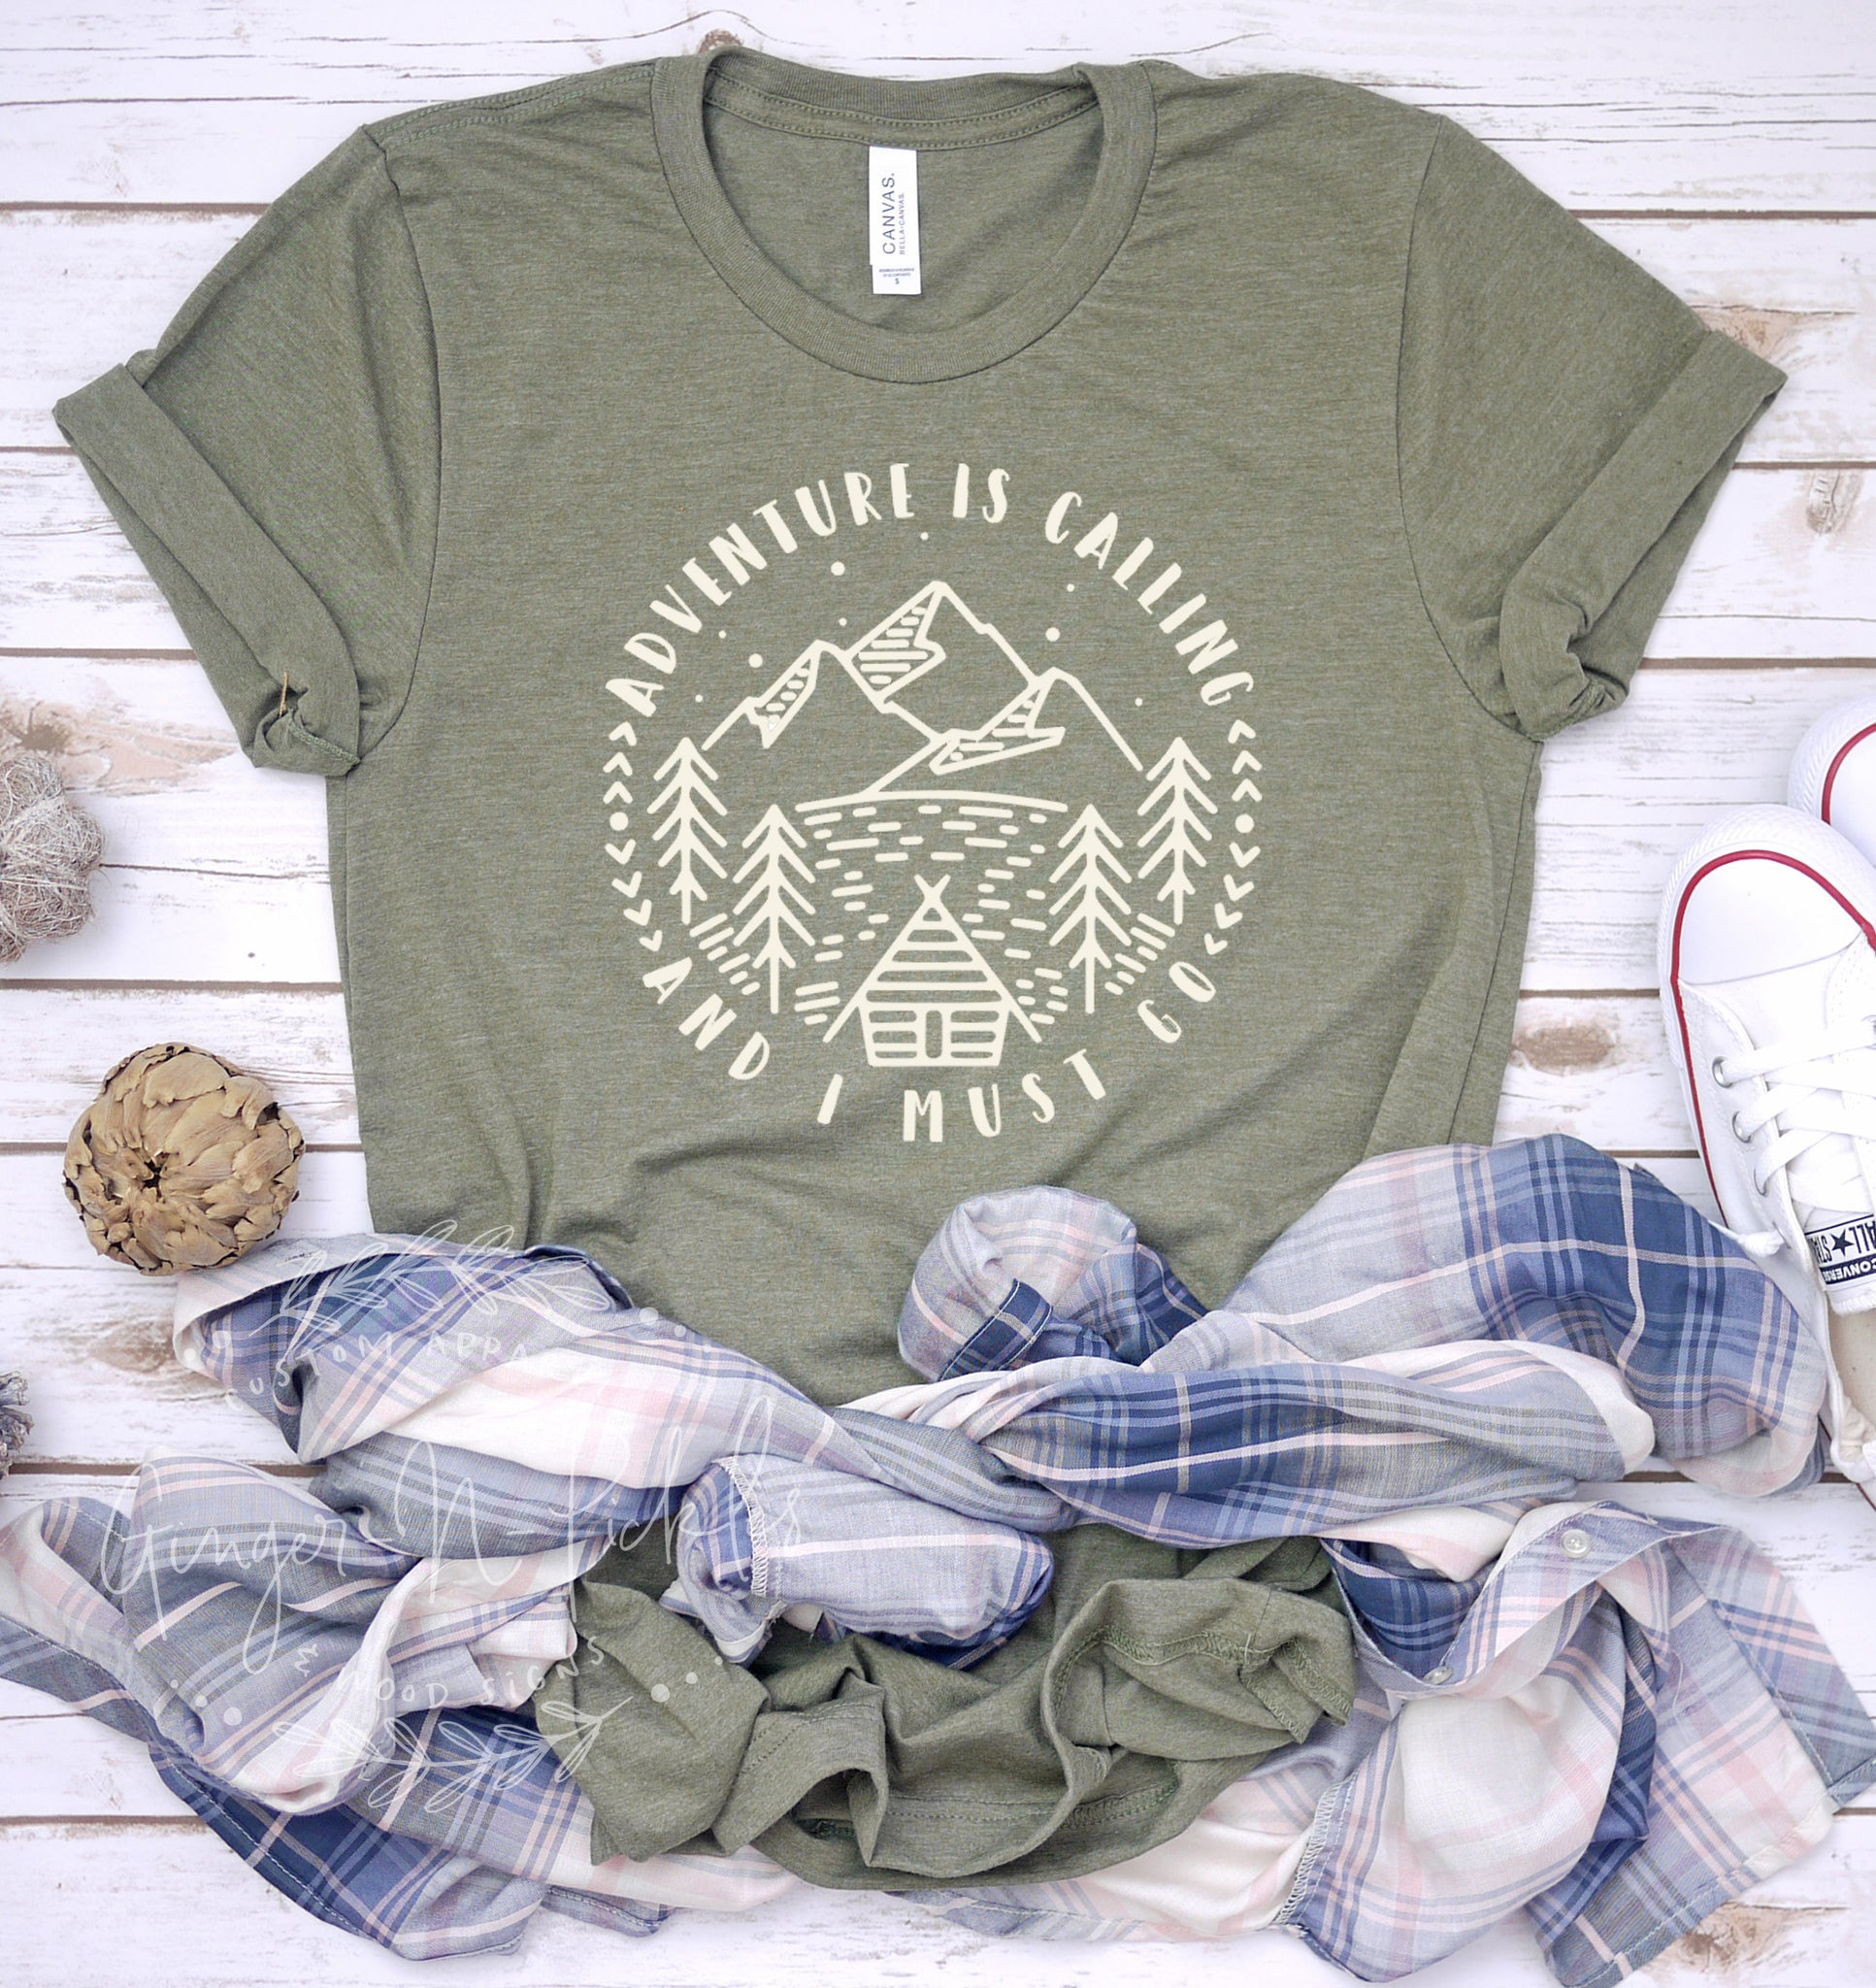 Adventure Is Calling and I Must Go Short Sleeve Shirt, Adventure with Mountain Range Shirt, Hiking Shirt